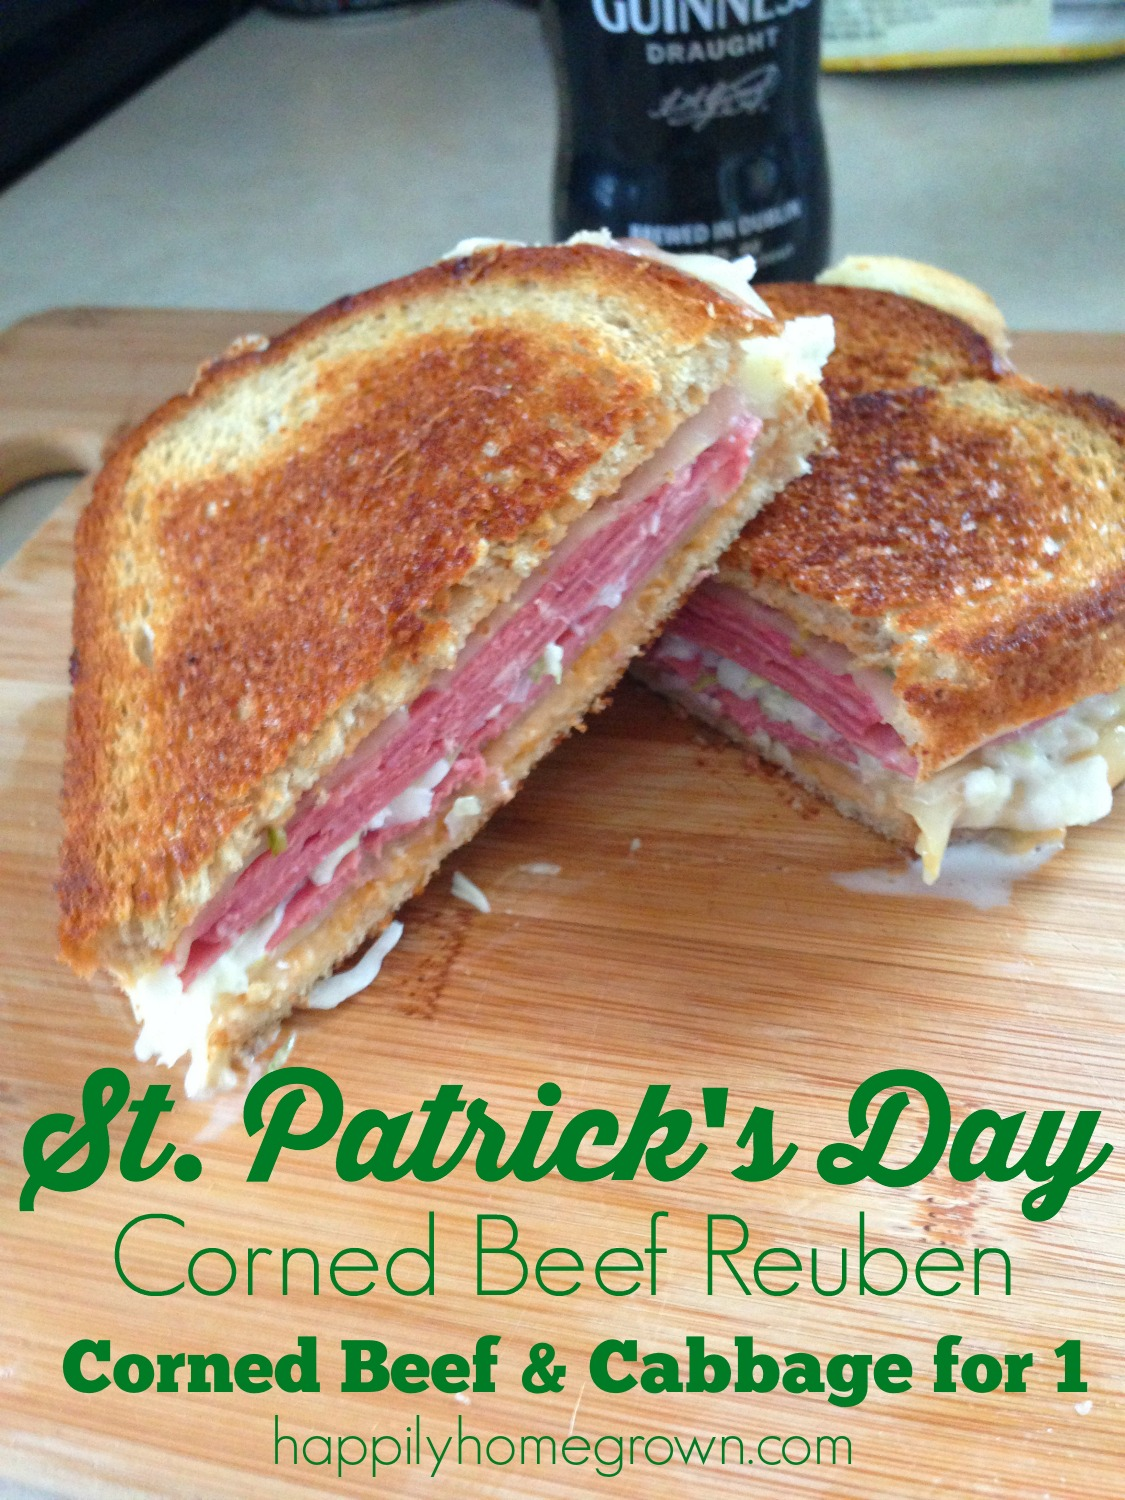 Corned Beef & Cabbage for 1. A delicious corned beef & swiss sandwich grilled to perfection, and tastier than what you would get at the local diner or deli.